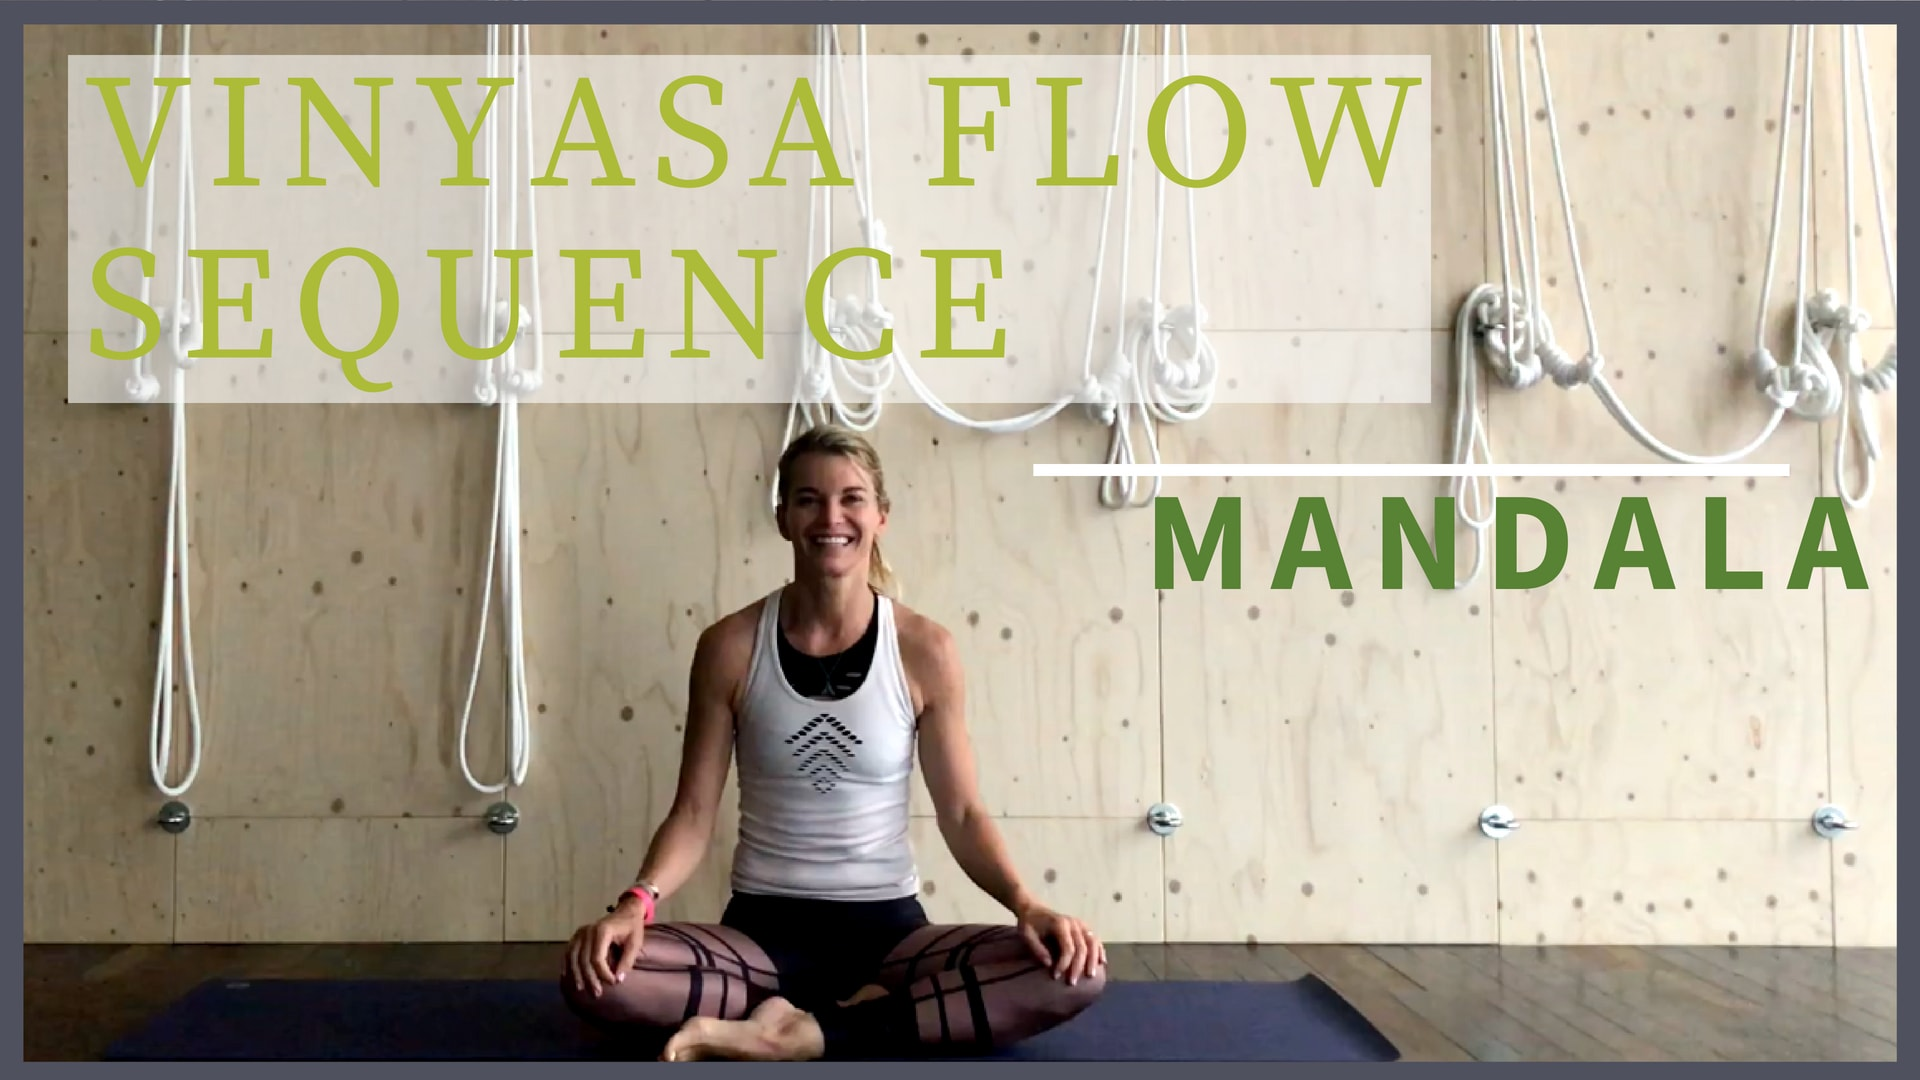 Vinyasa Flow Sequence Mandala